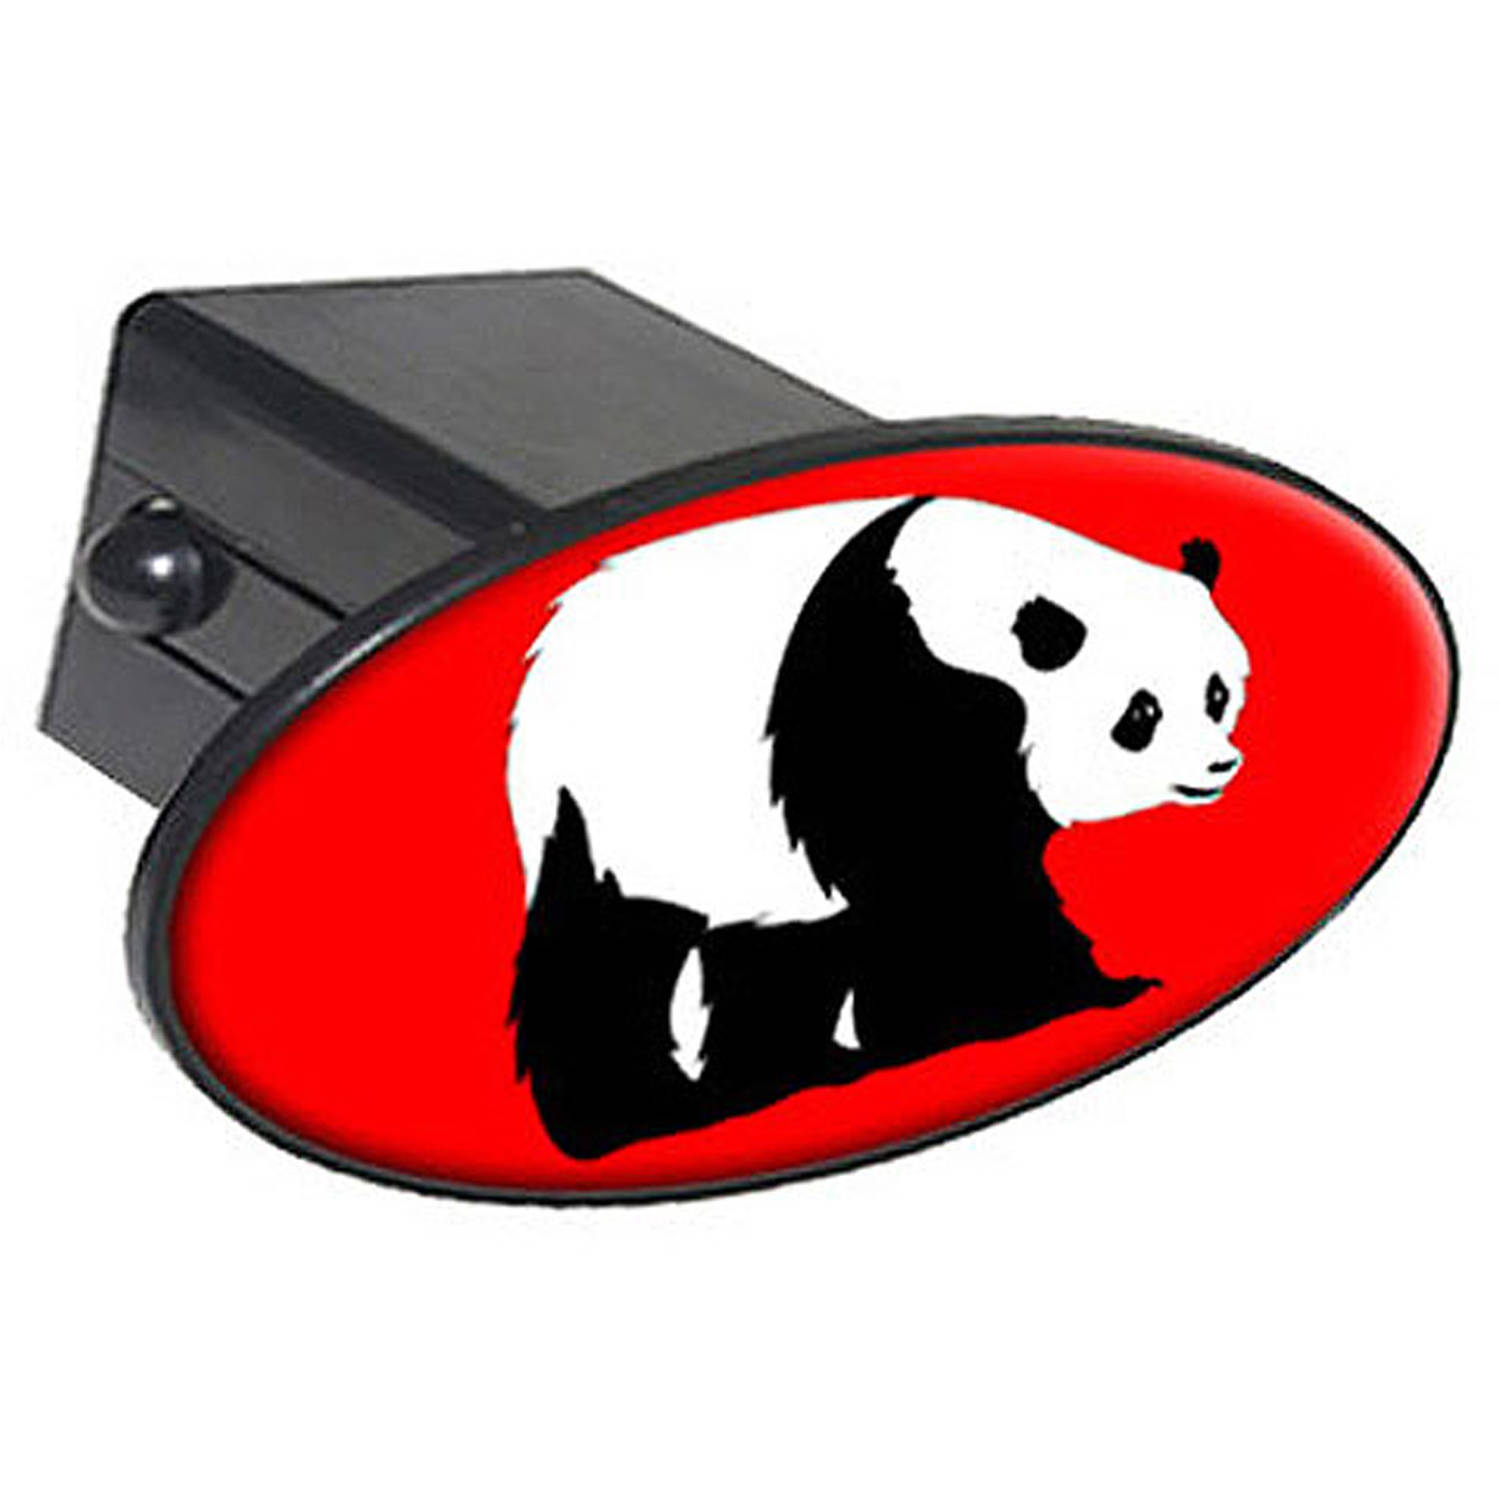 "Panda Bear On Red, Animal Zoo 2"" Oval Tow Trailer Hitch Cover Plug Insert"